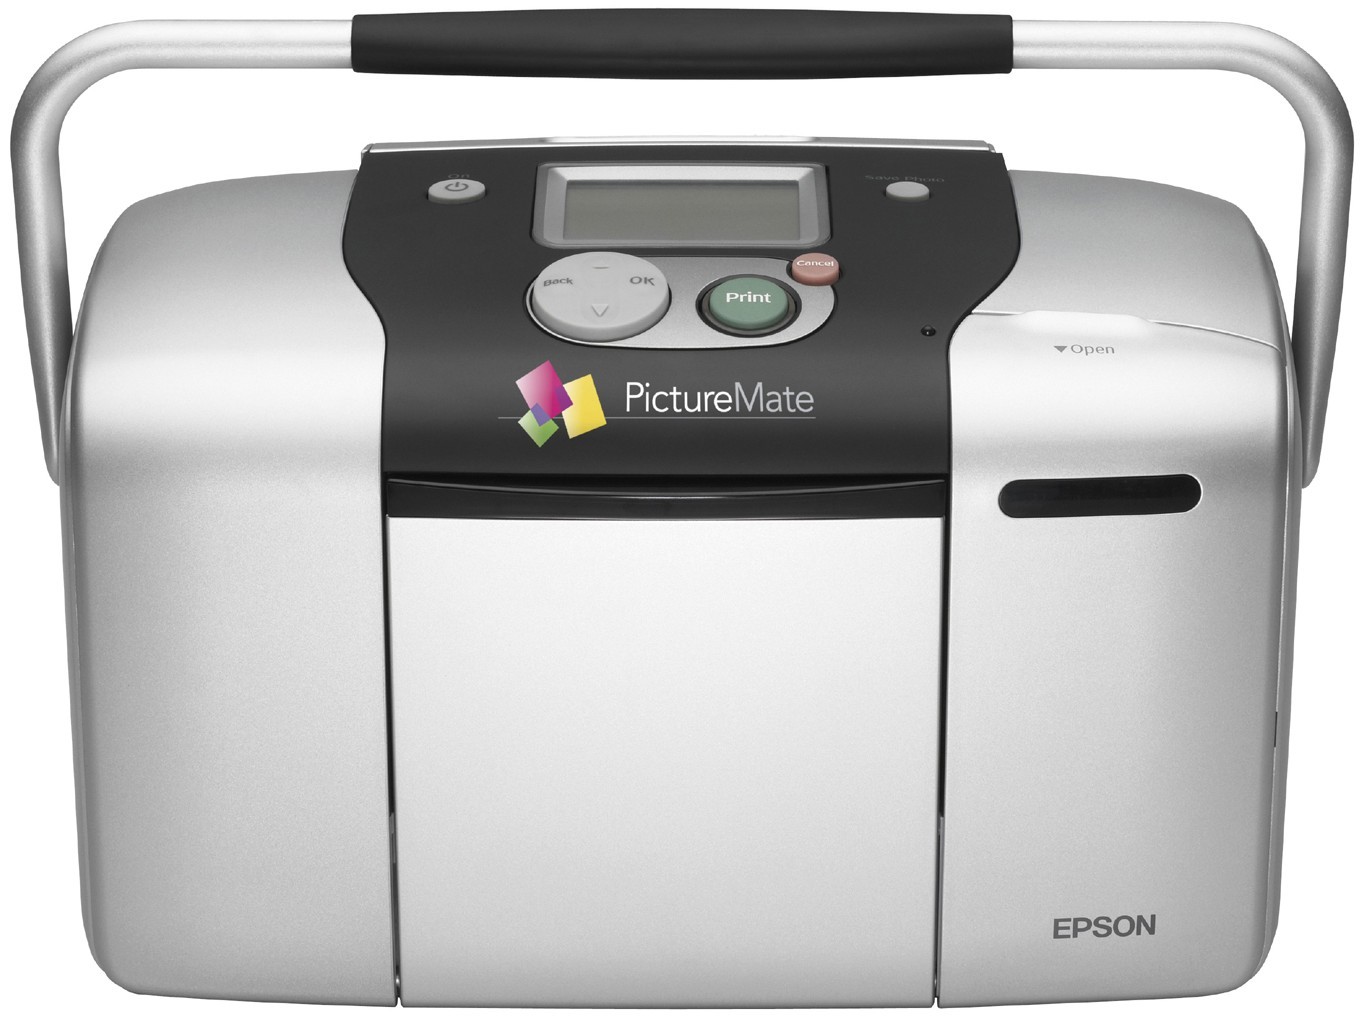 Step-by-step Driver Epson Printer Picturemate CentOS Installation -  Featured